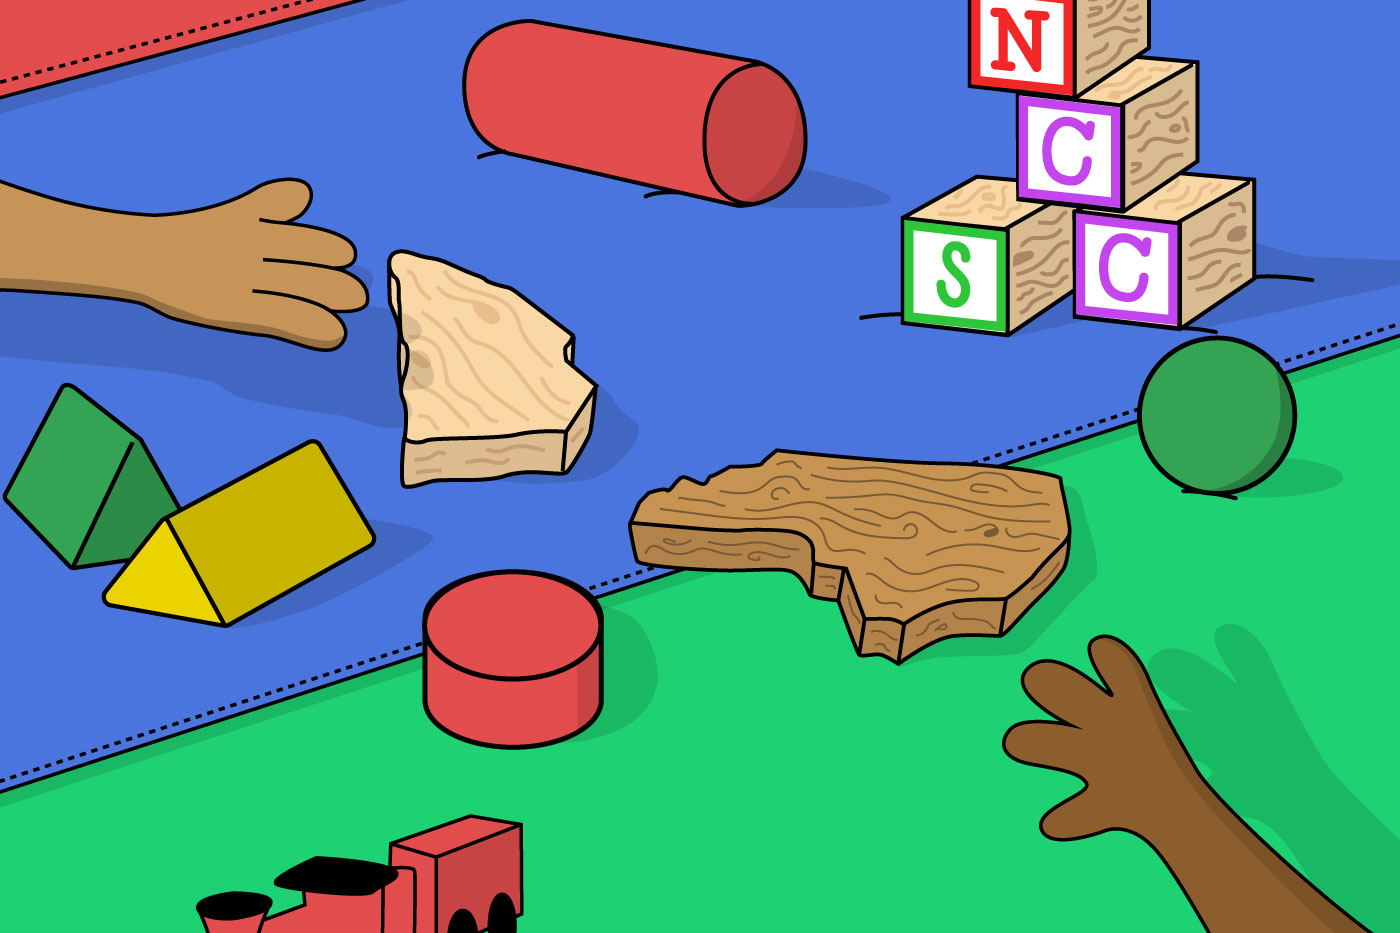 Can the NC an SC hip-hop scenes play nice together? Super Empty illustration by Ryan Cocca.